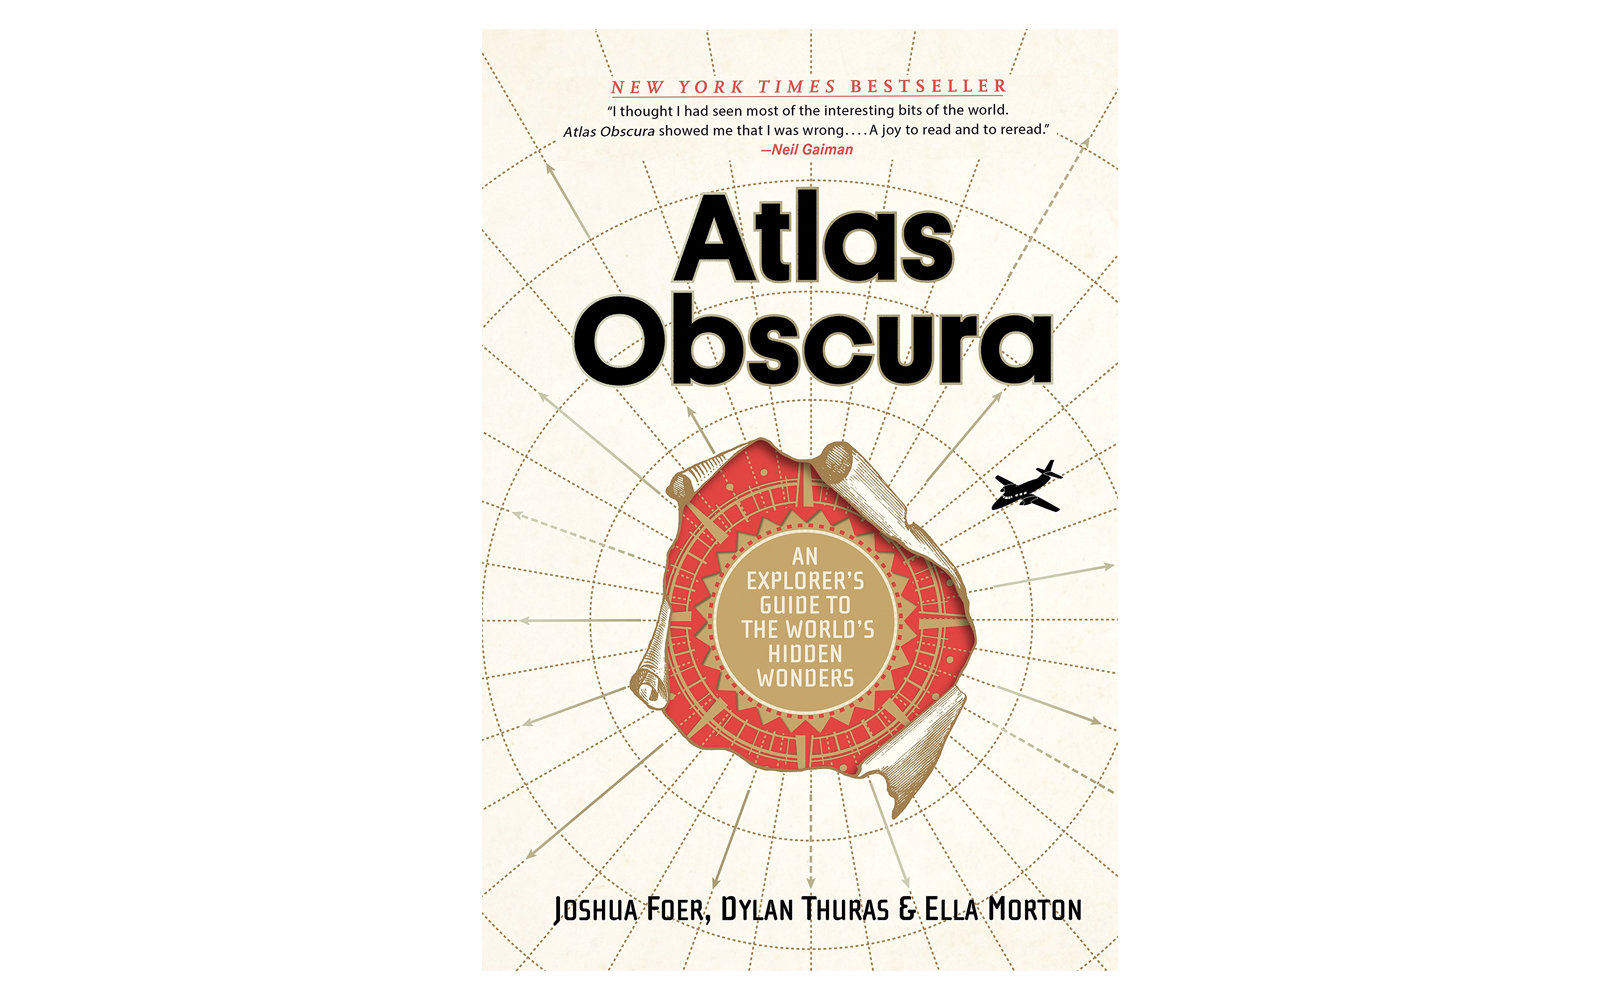 Atlas Obscura: An Explorer's Guide to the World's Hidden Wonders by Joshua Foer